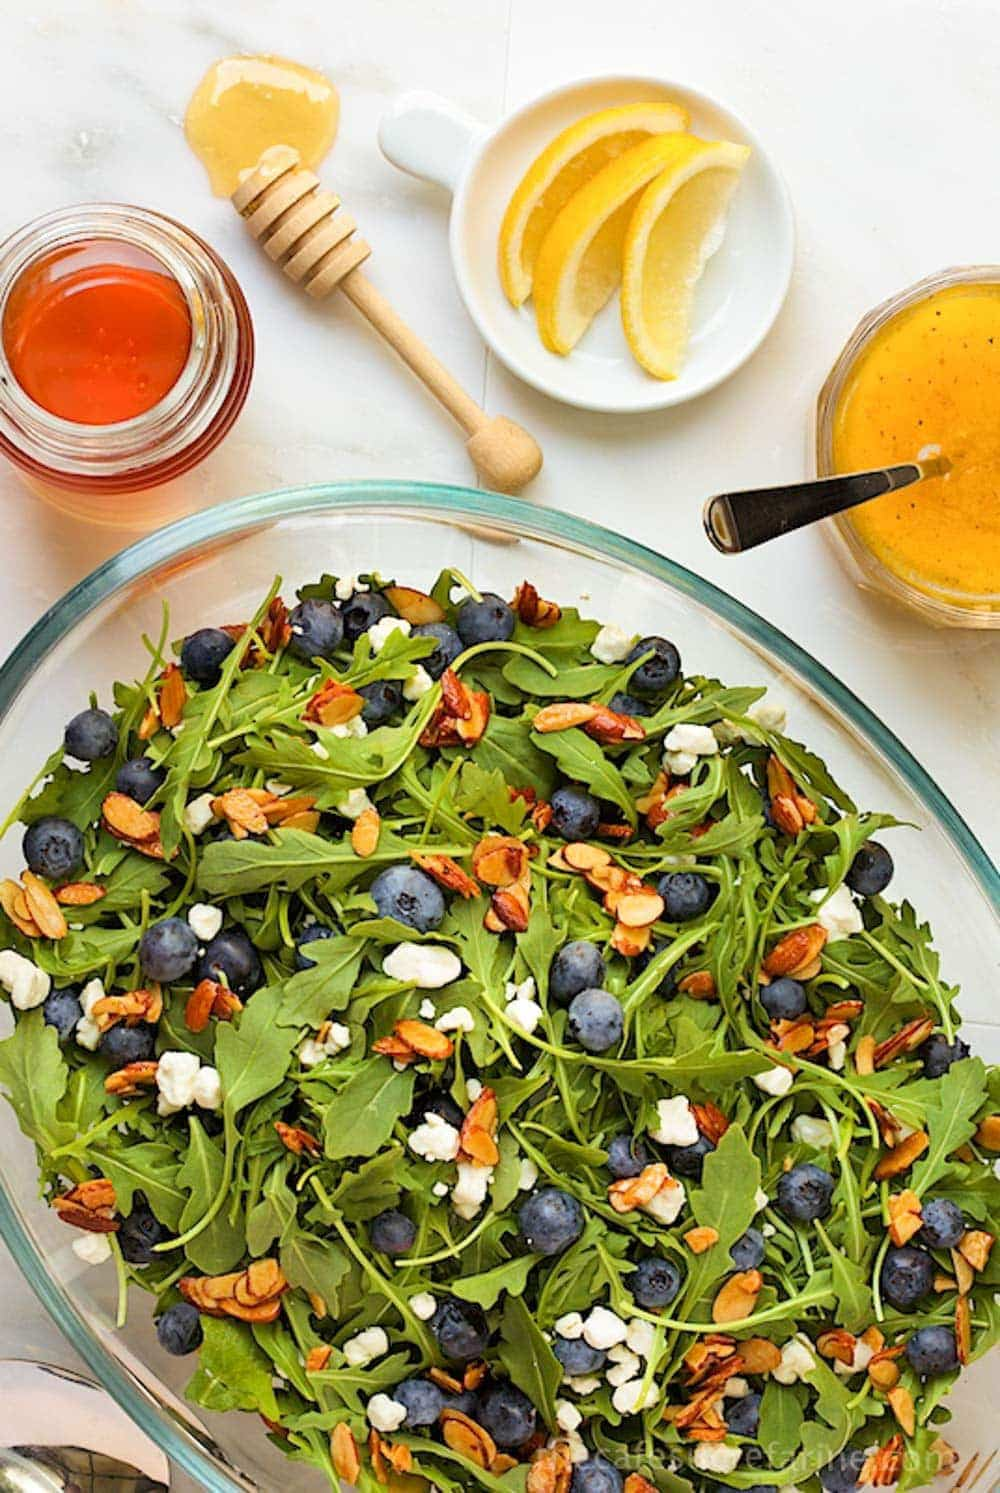 View from above of Blueberry Arugula Salad with Honey-Lemon Dressing in a glass oval serving bowl.